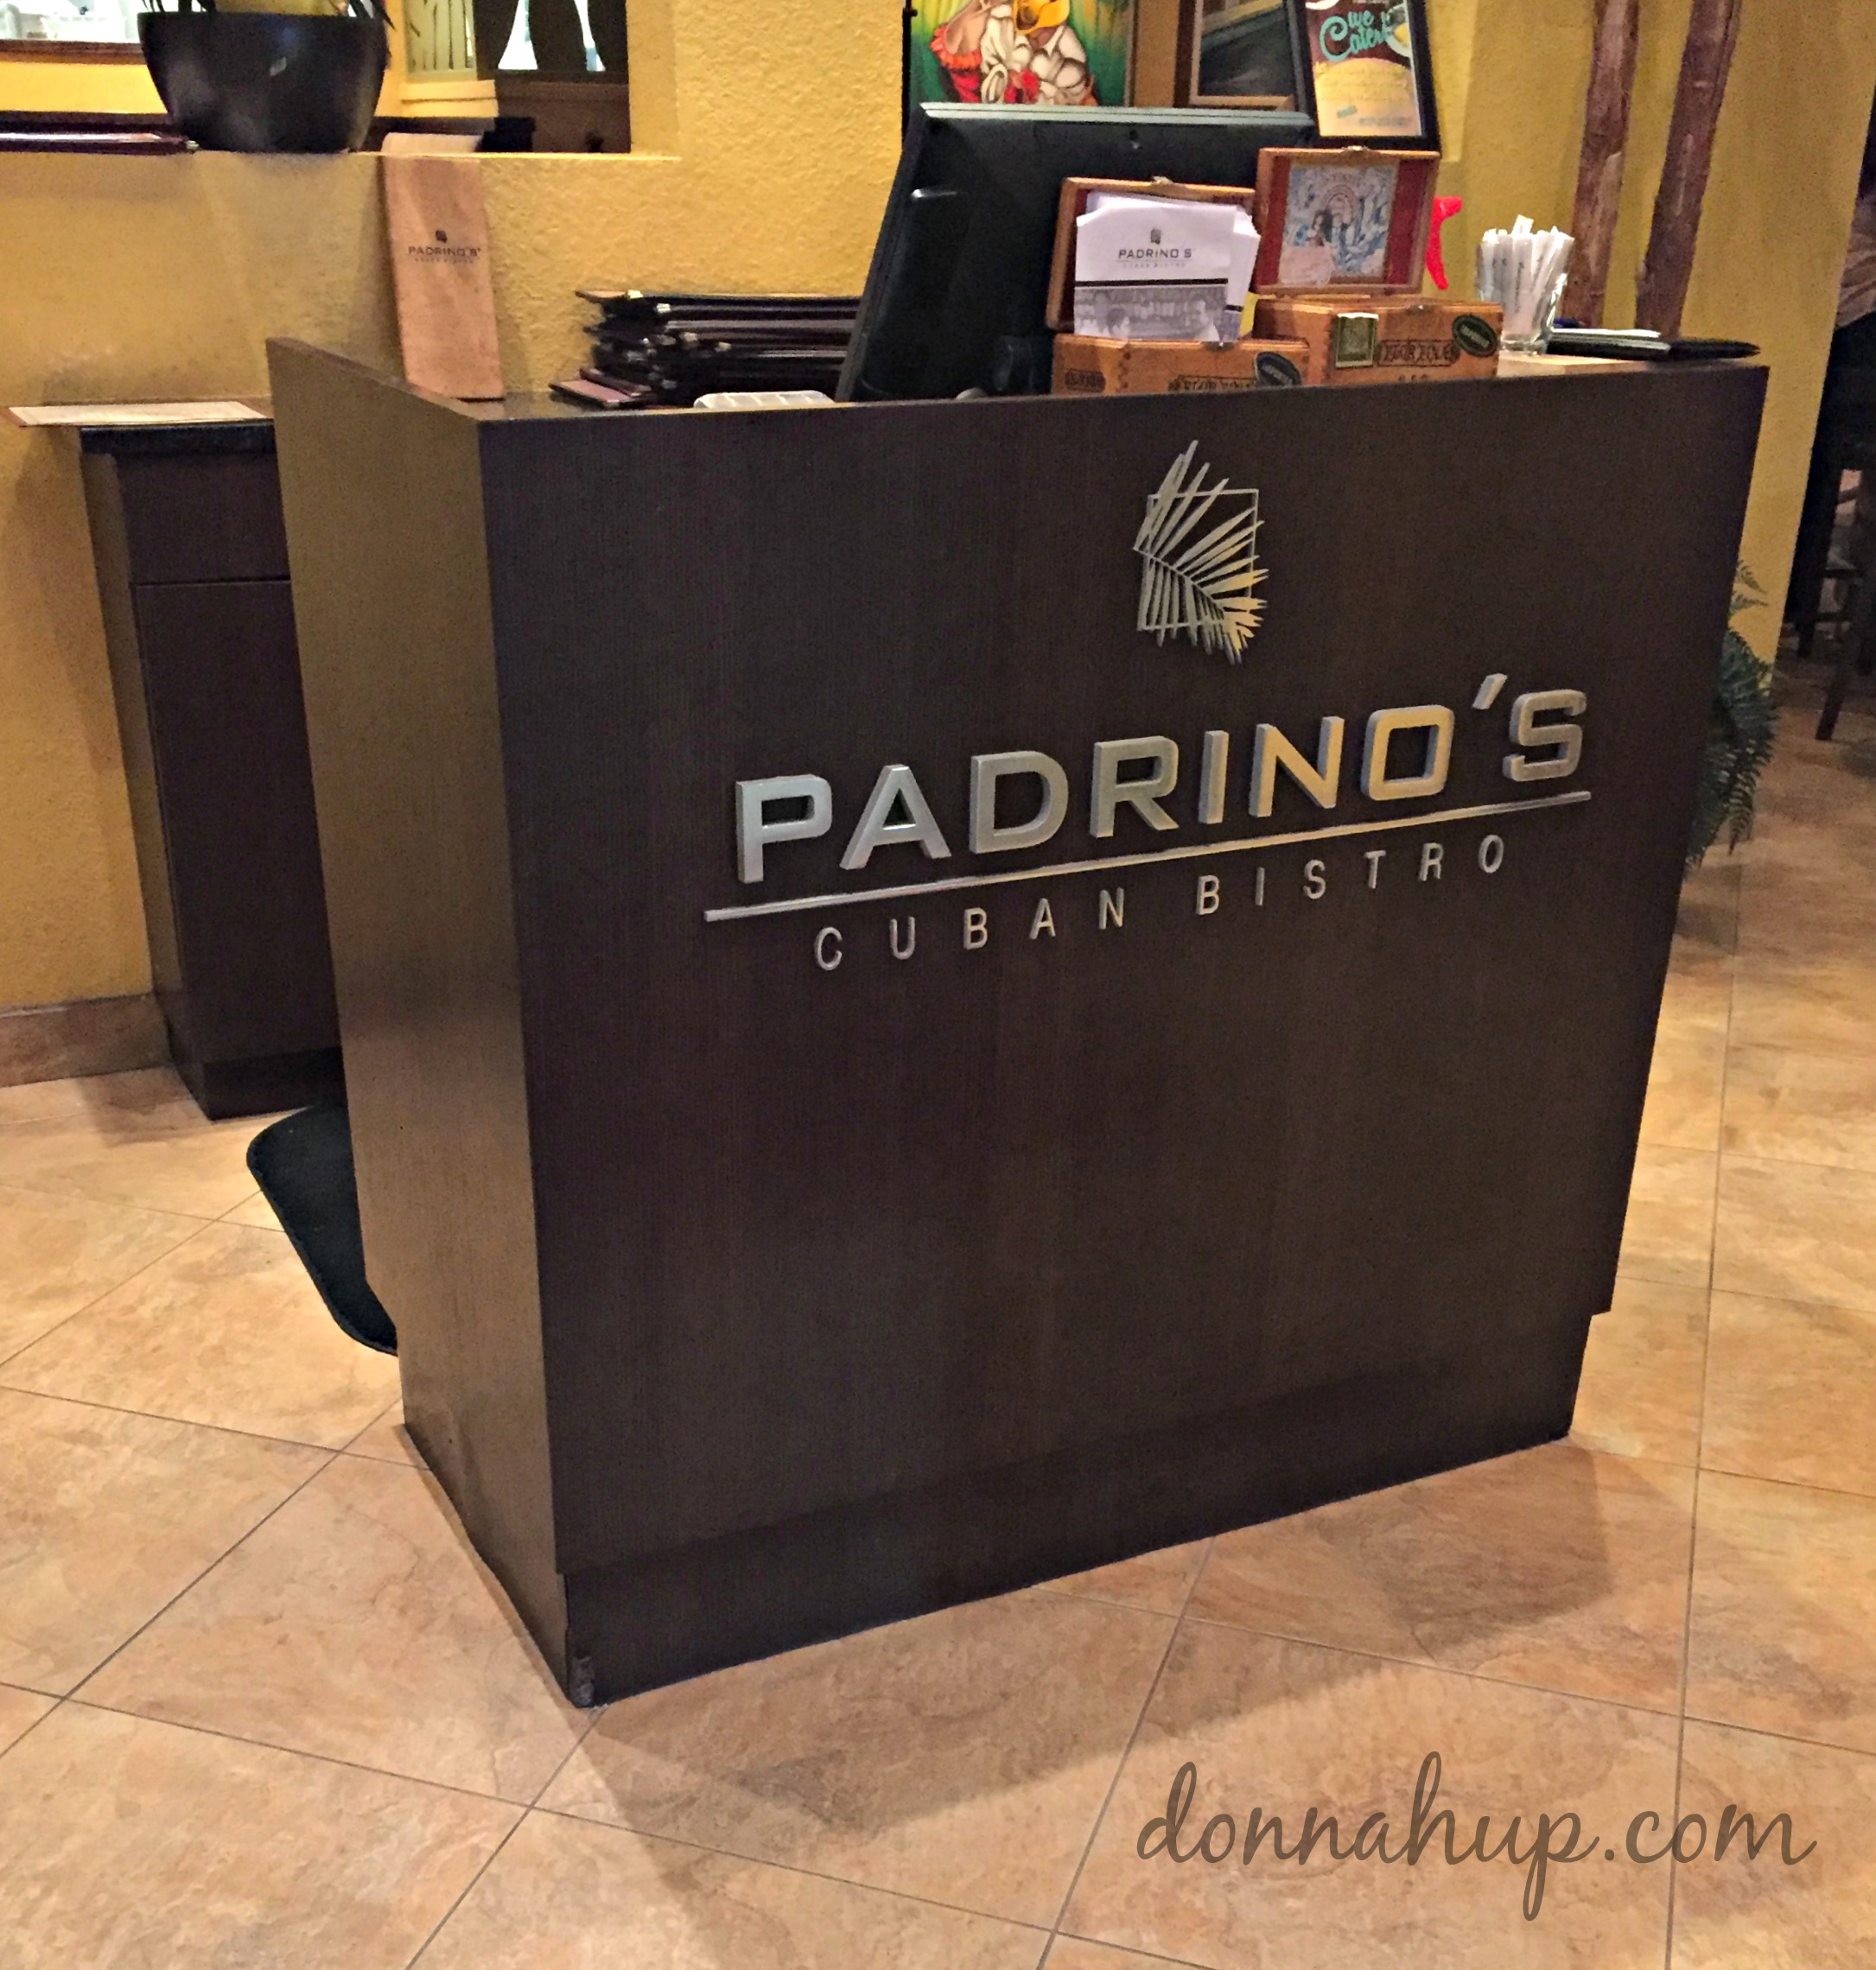 Padrinos Latin Food - My Favorite Cuban Bistro